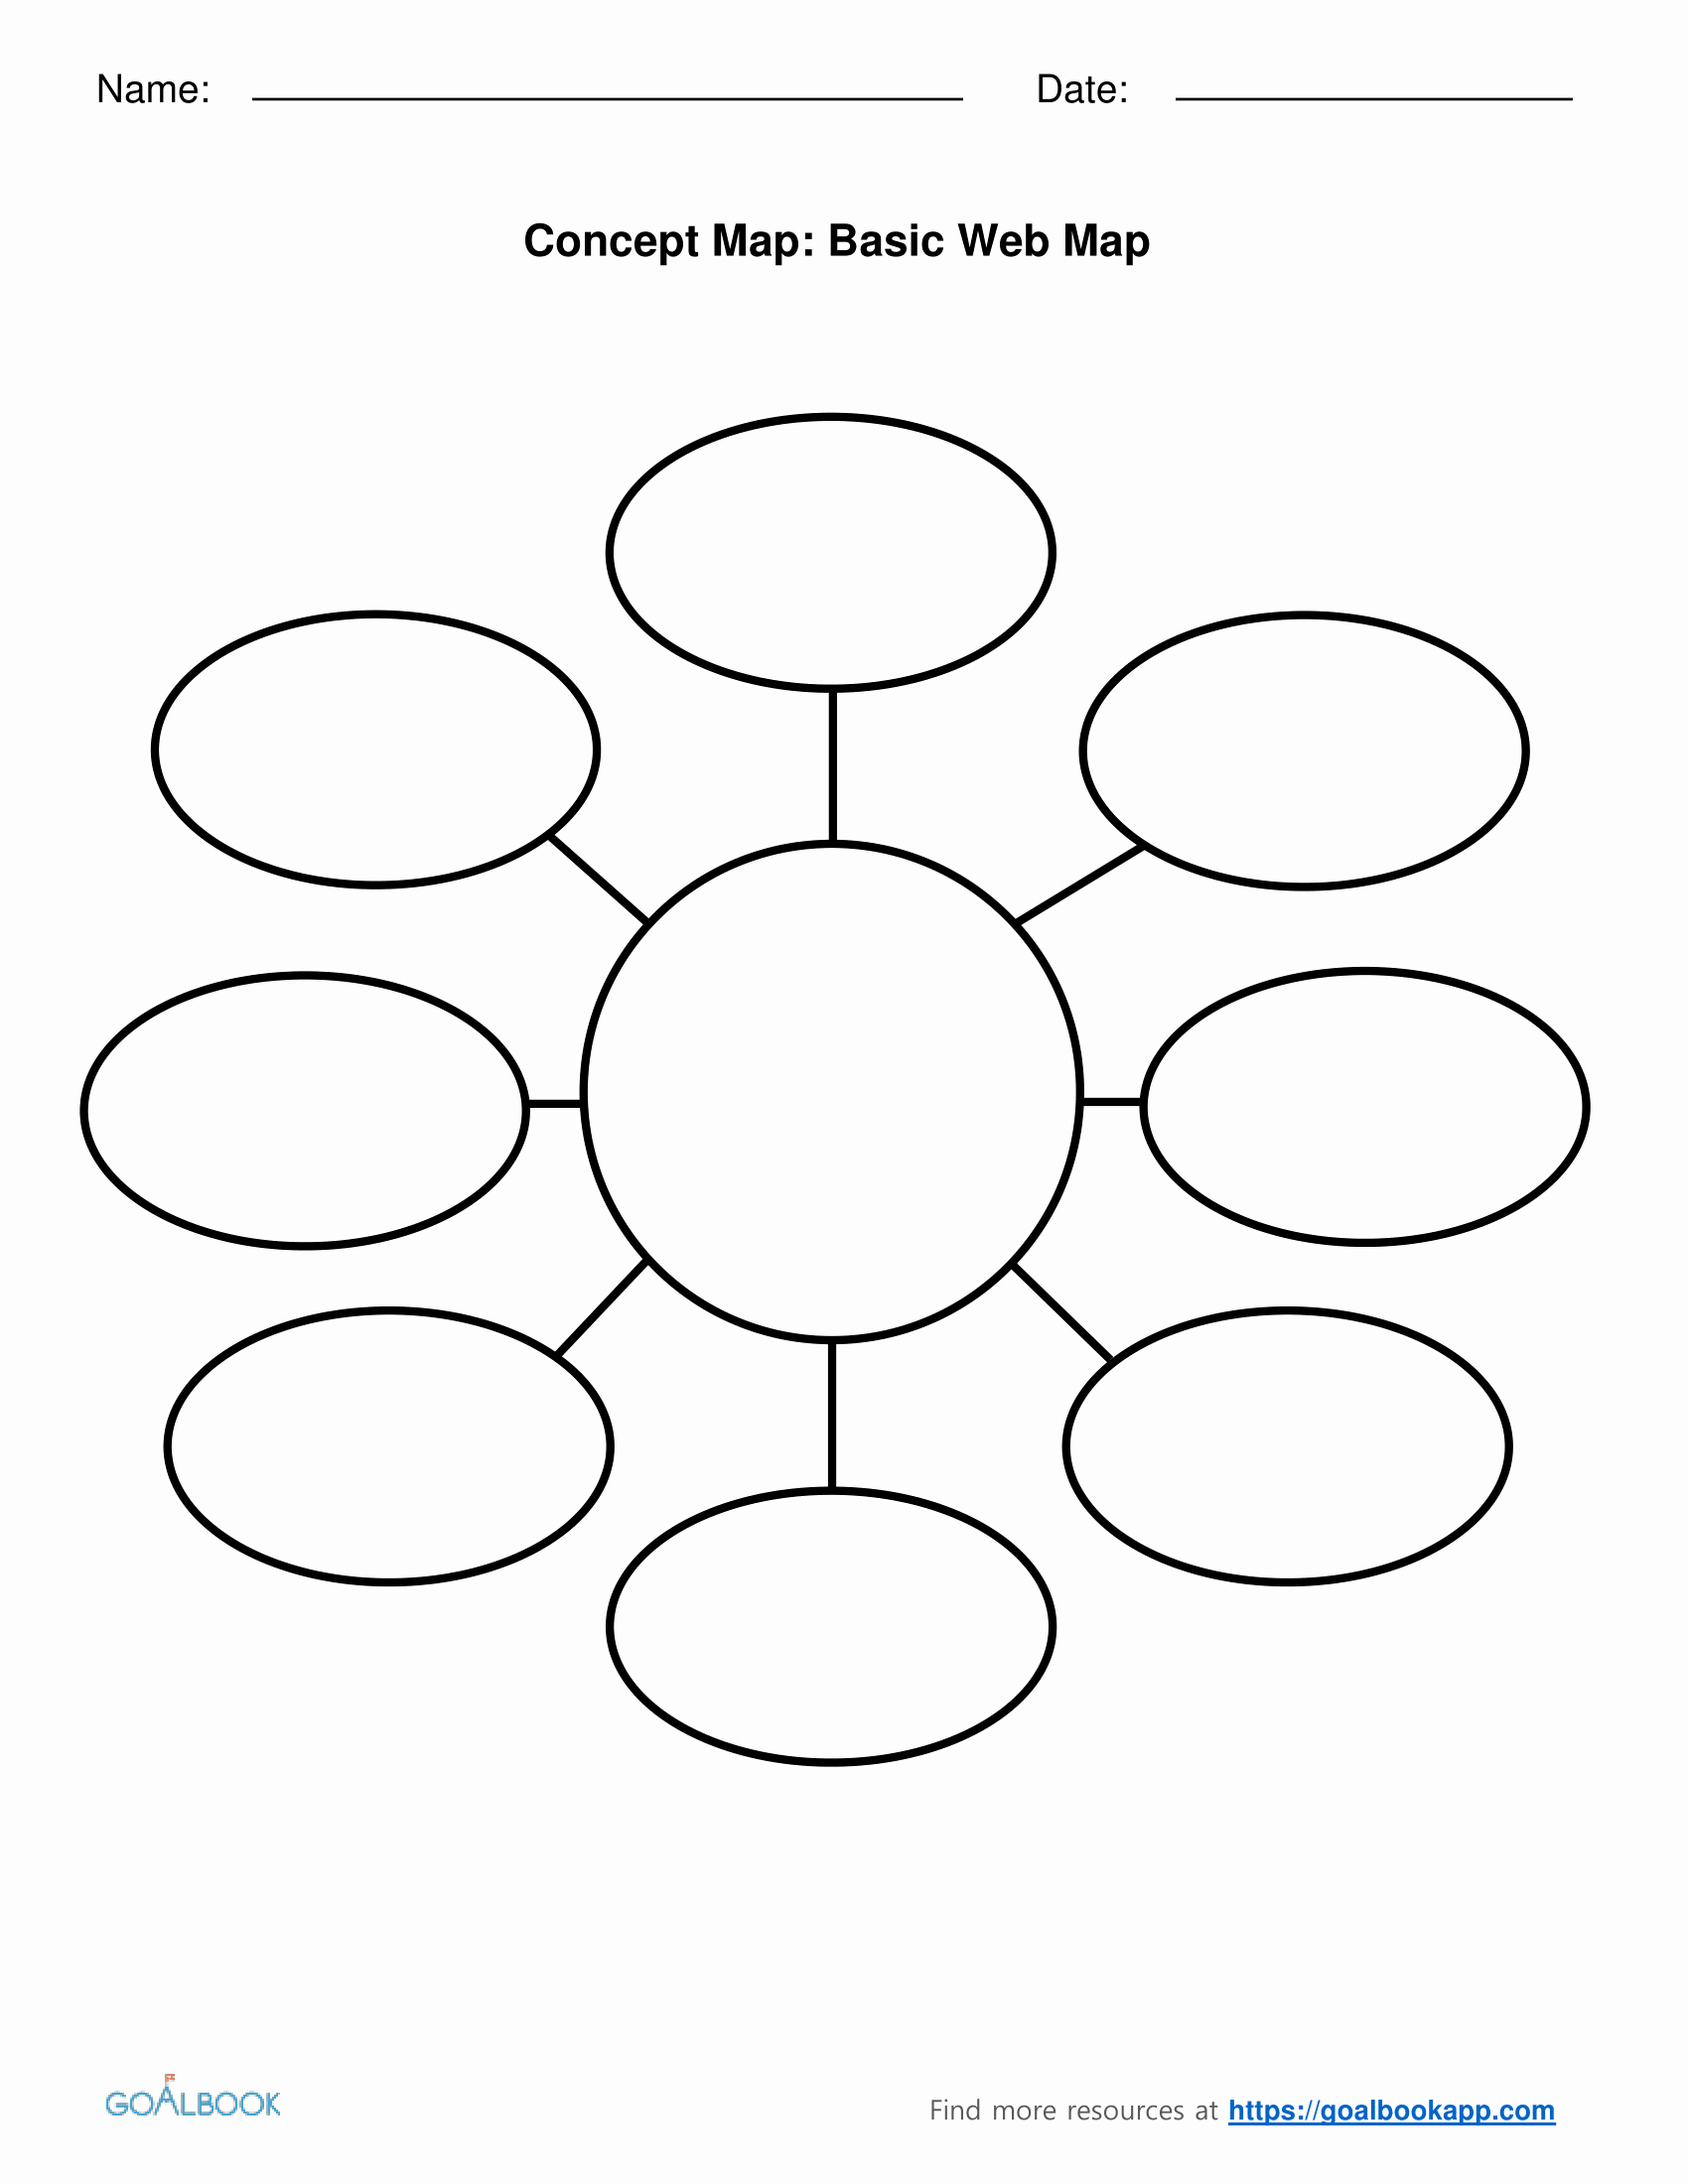 Free Concept Mapping Templates Fresh Graphic organizers